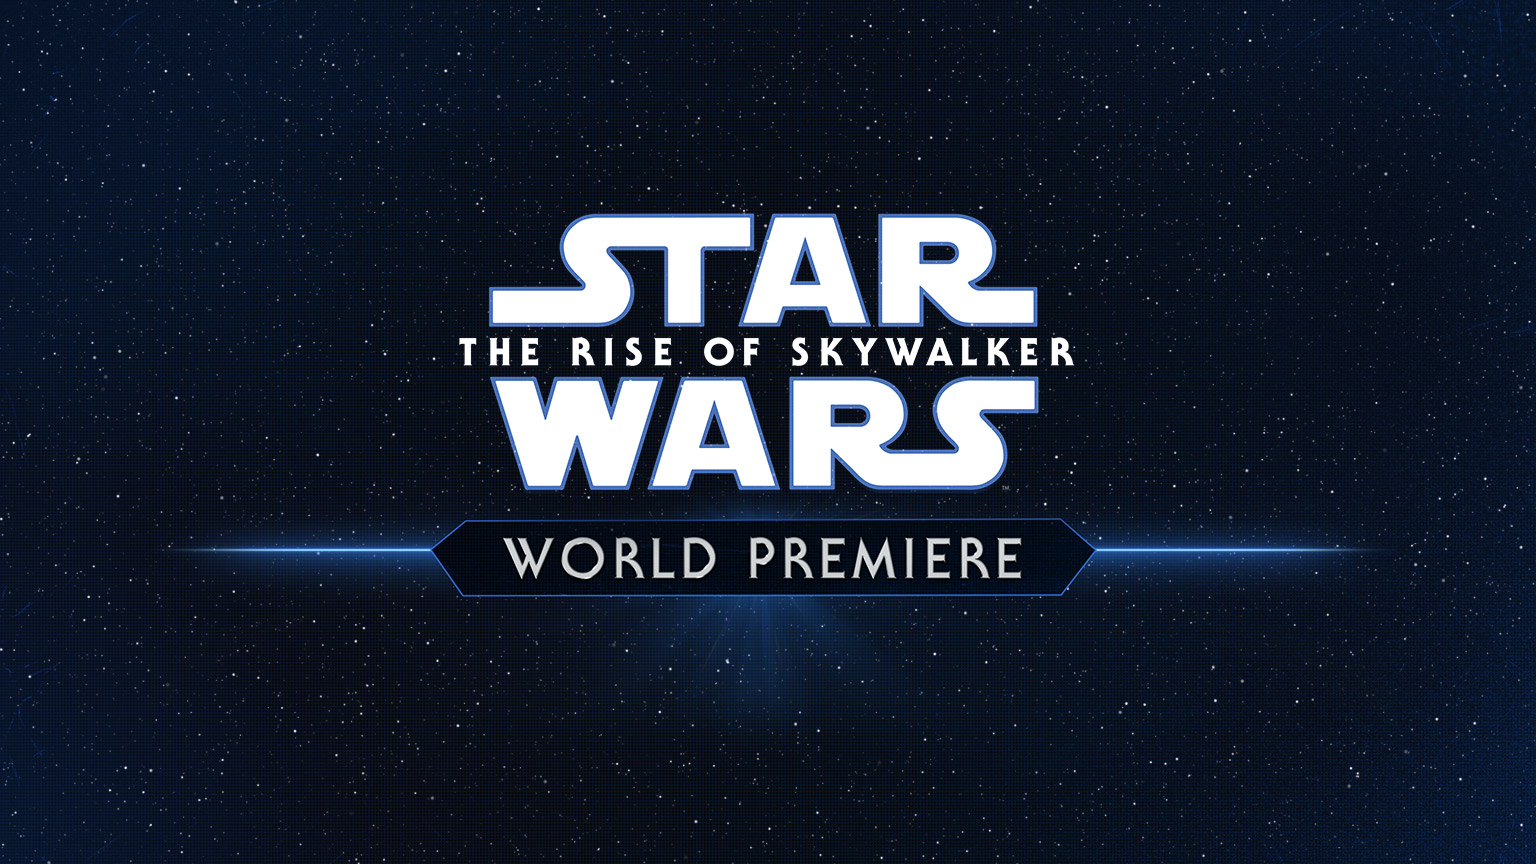 Star Wars: The Rise of Skywalker world premiere.